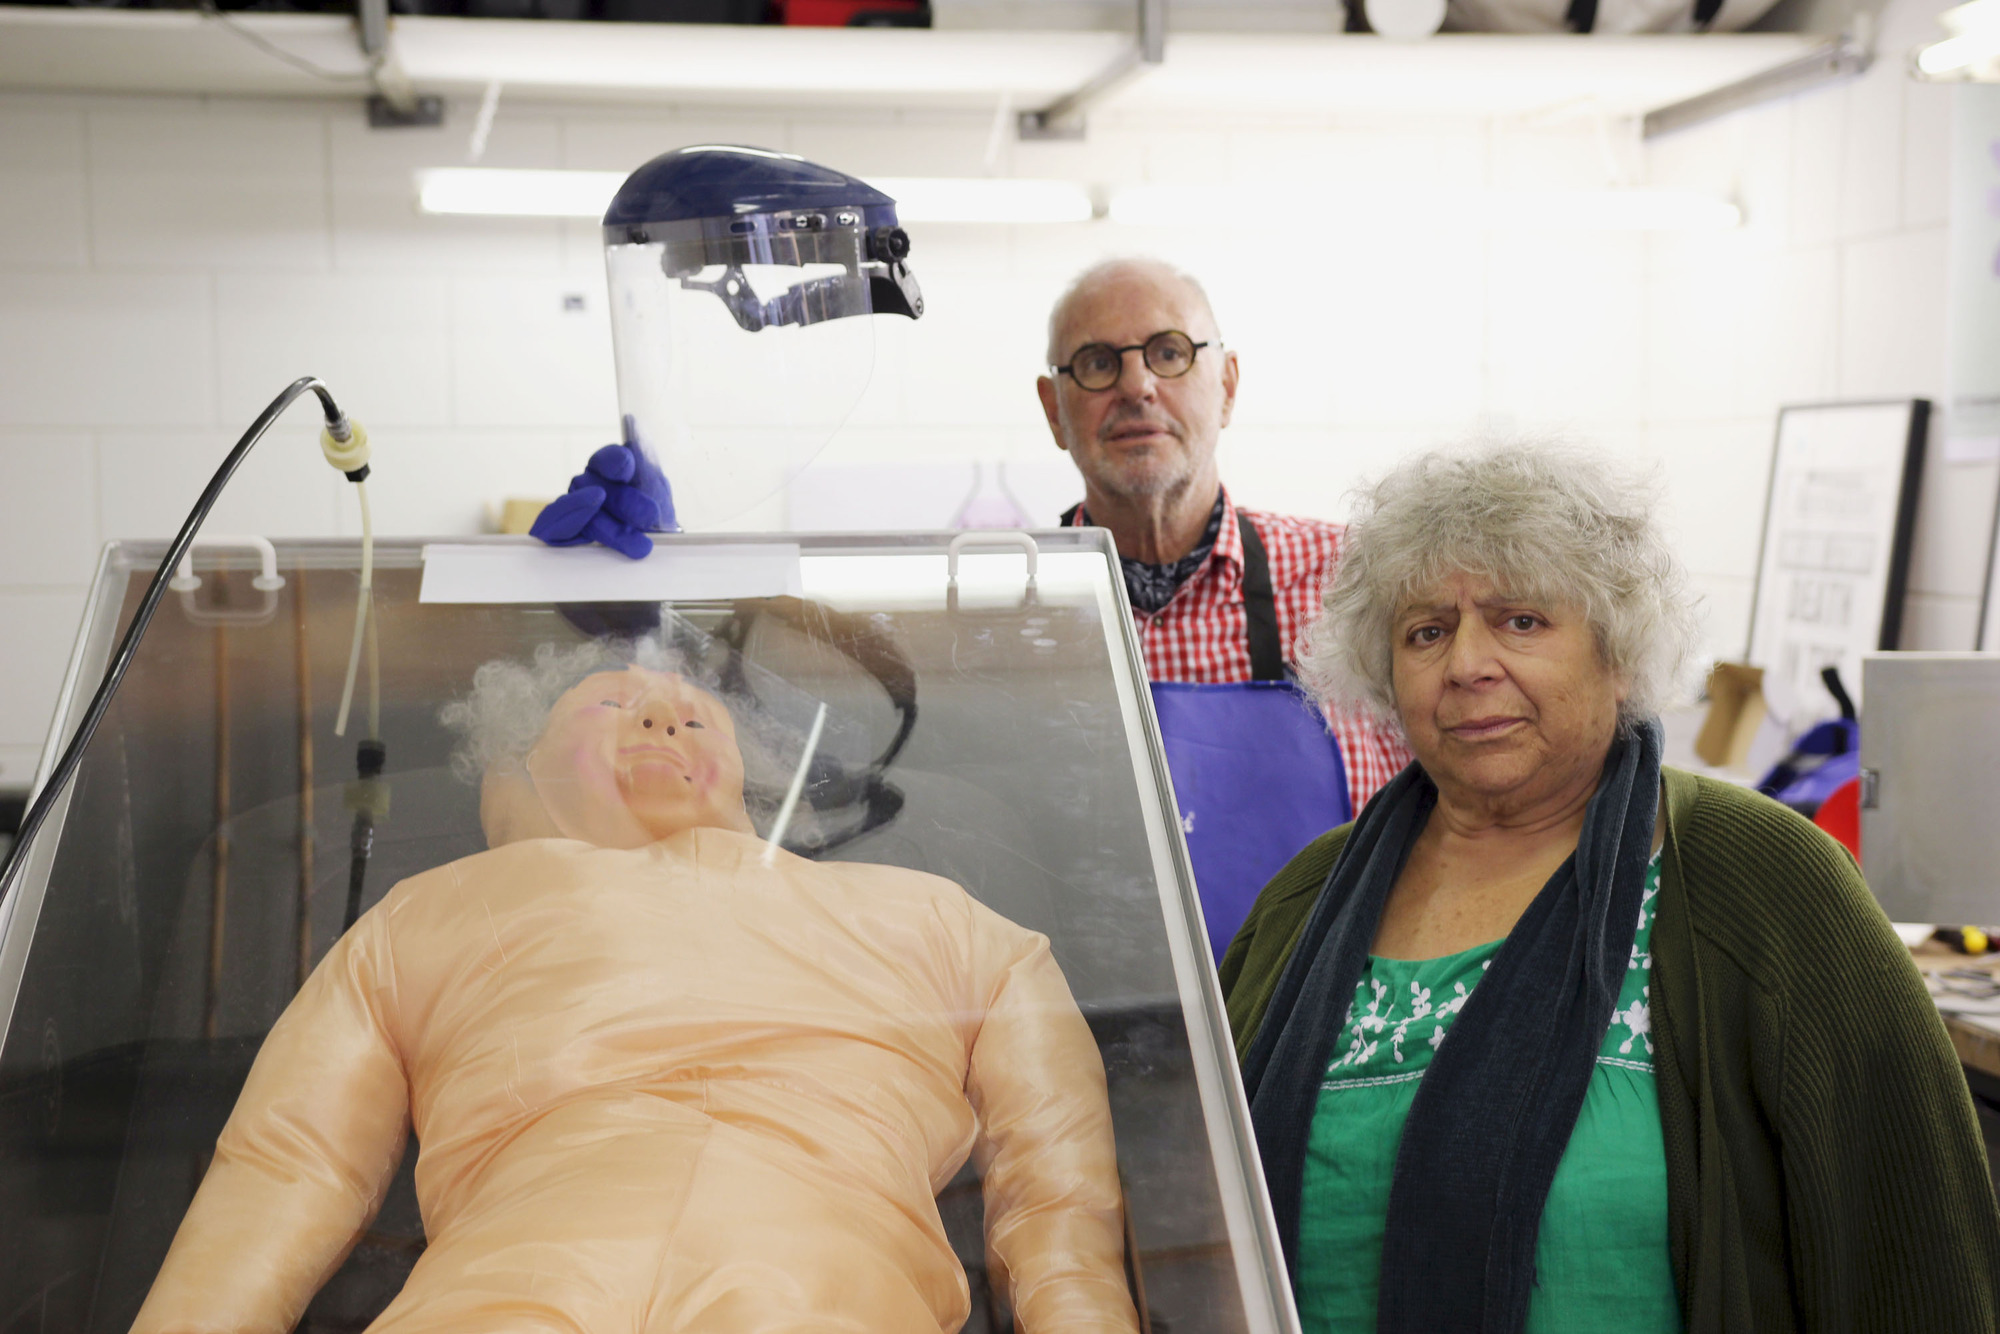 What has Miriam Margolyes starred in and who is her partner?